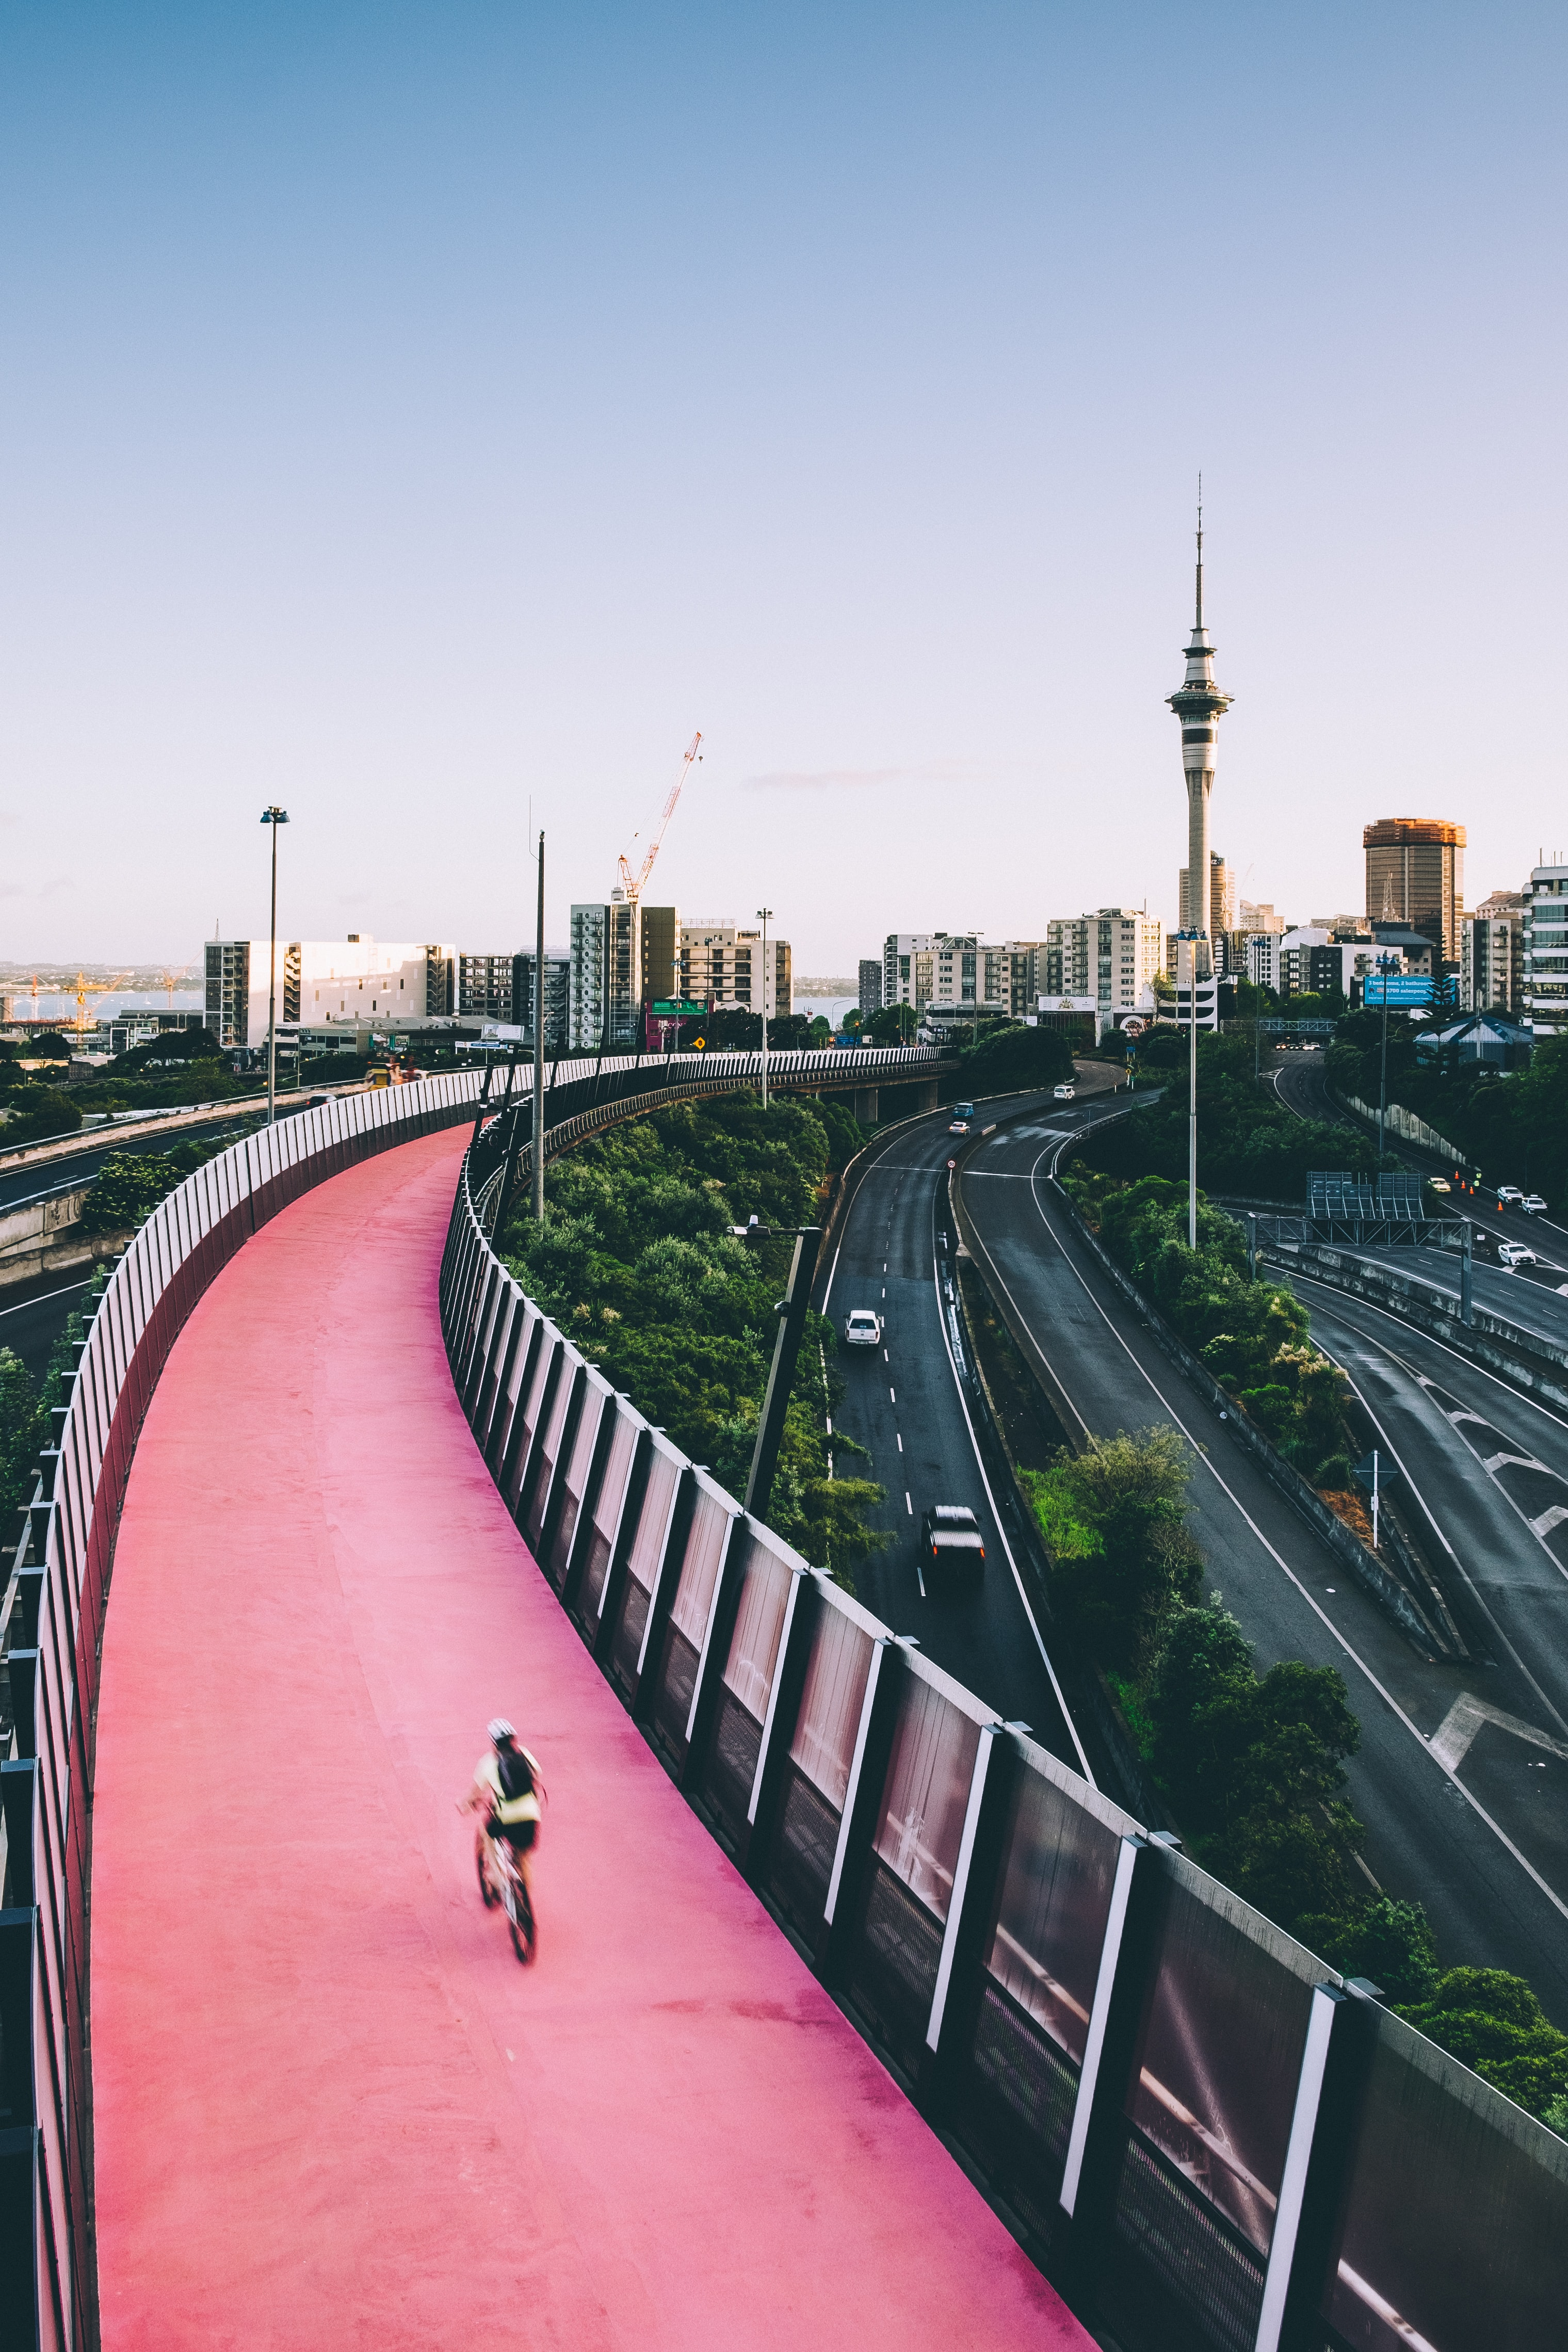 person biking on red concrete road during daytime